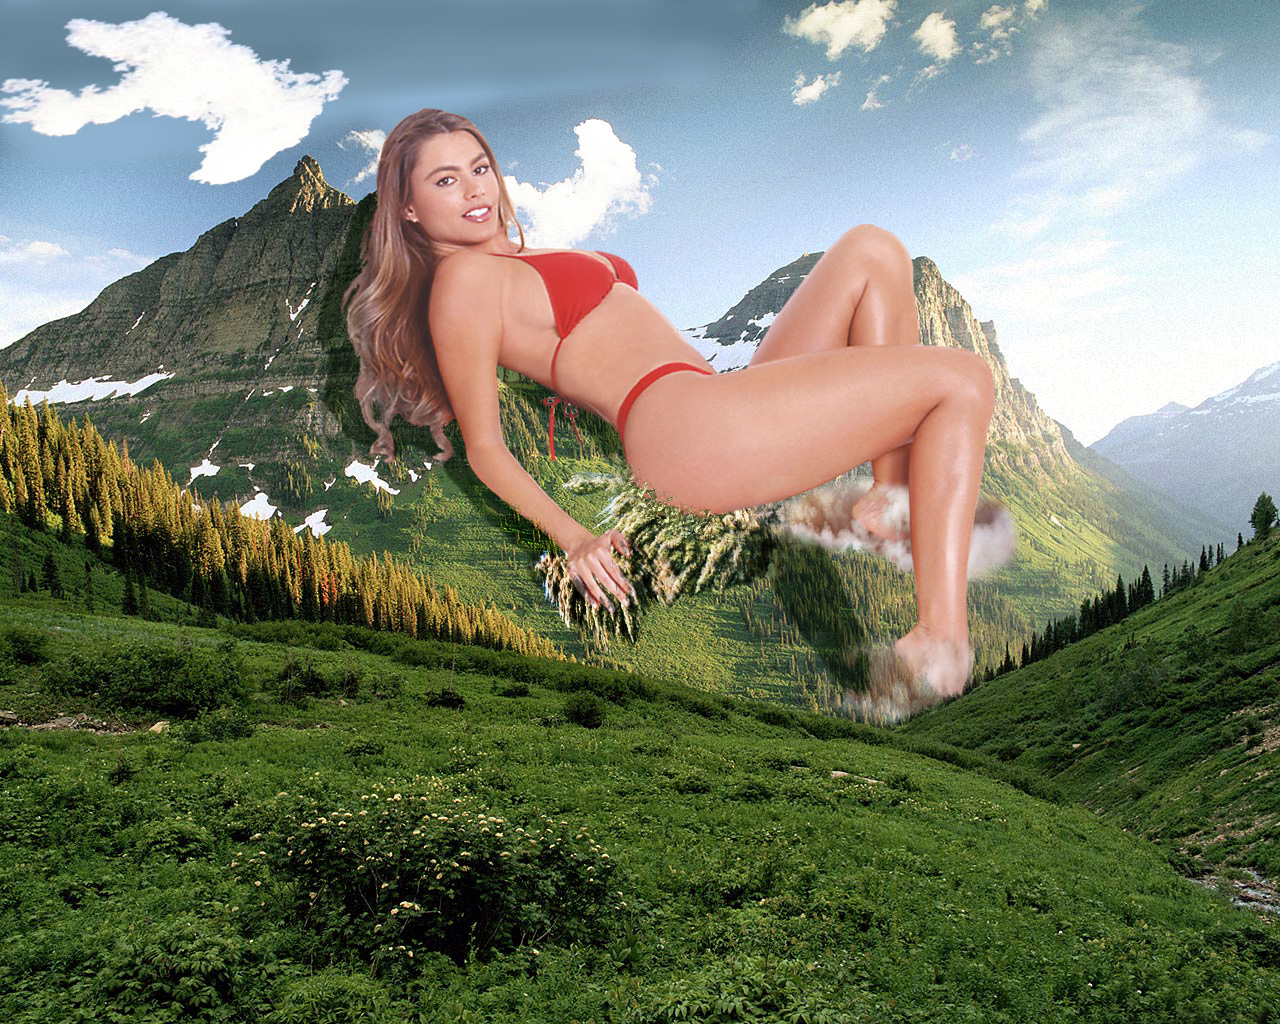 164321 - collage field giantess legs looking_at_viewer mountain outdoor sky swimsuit trees wonderslug